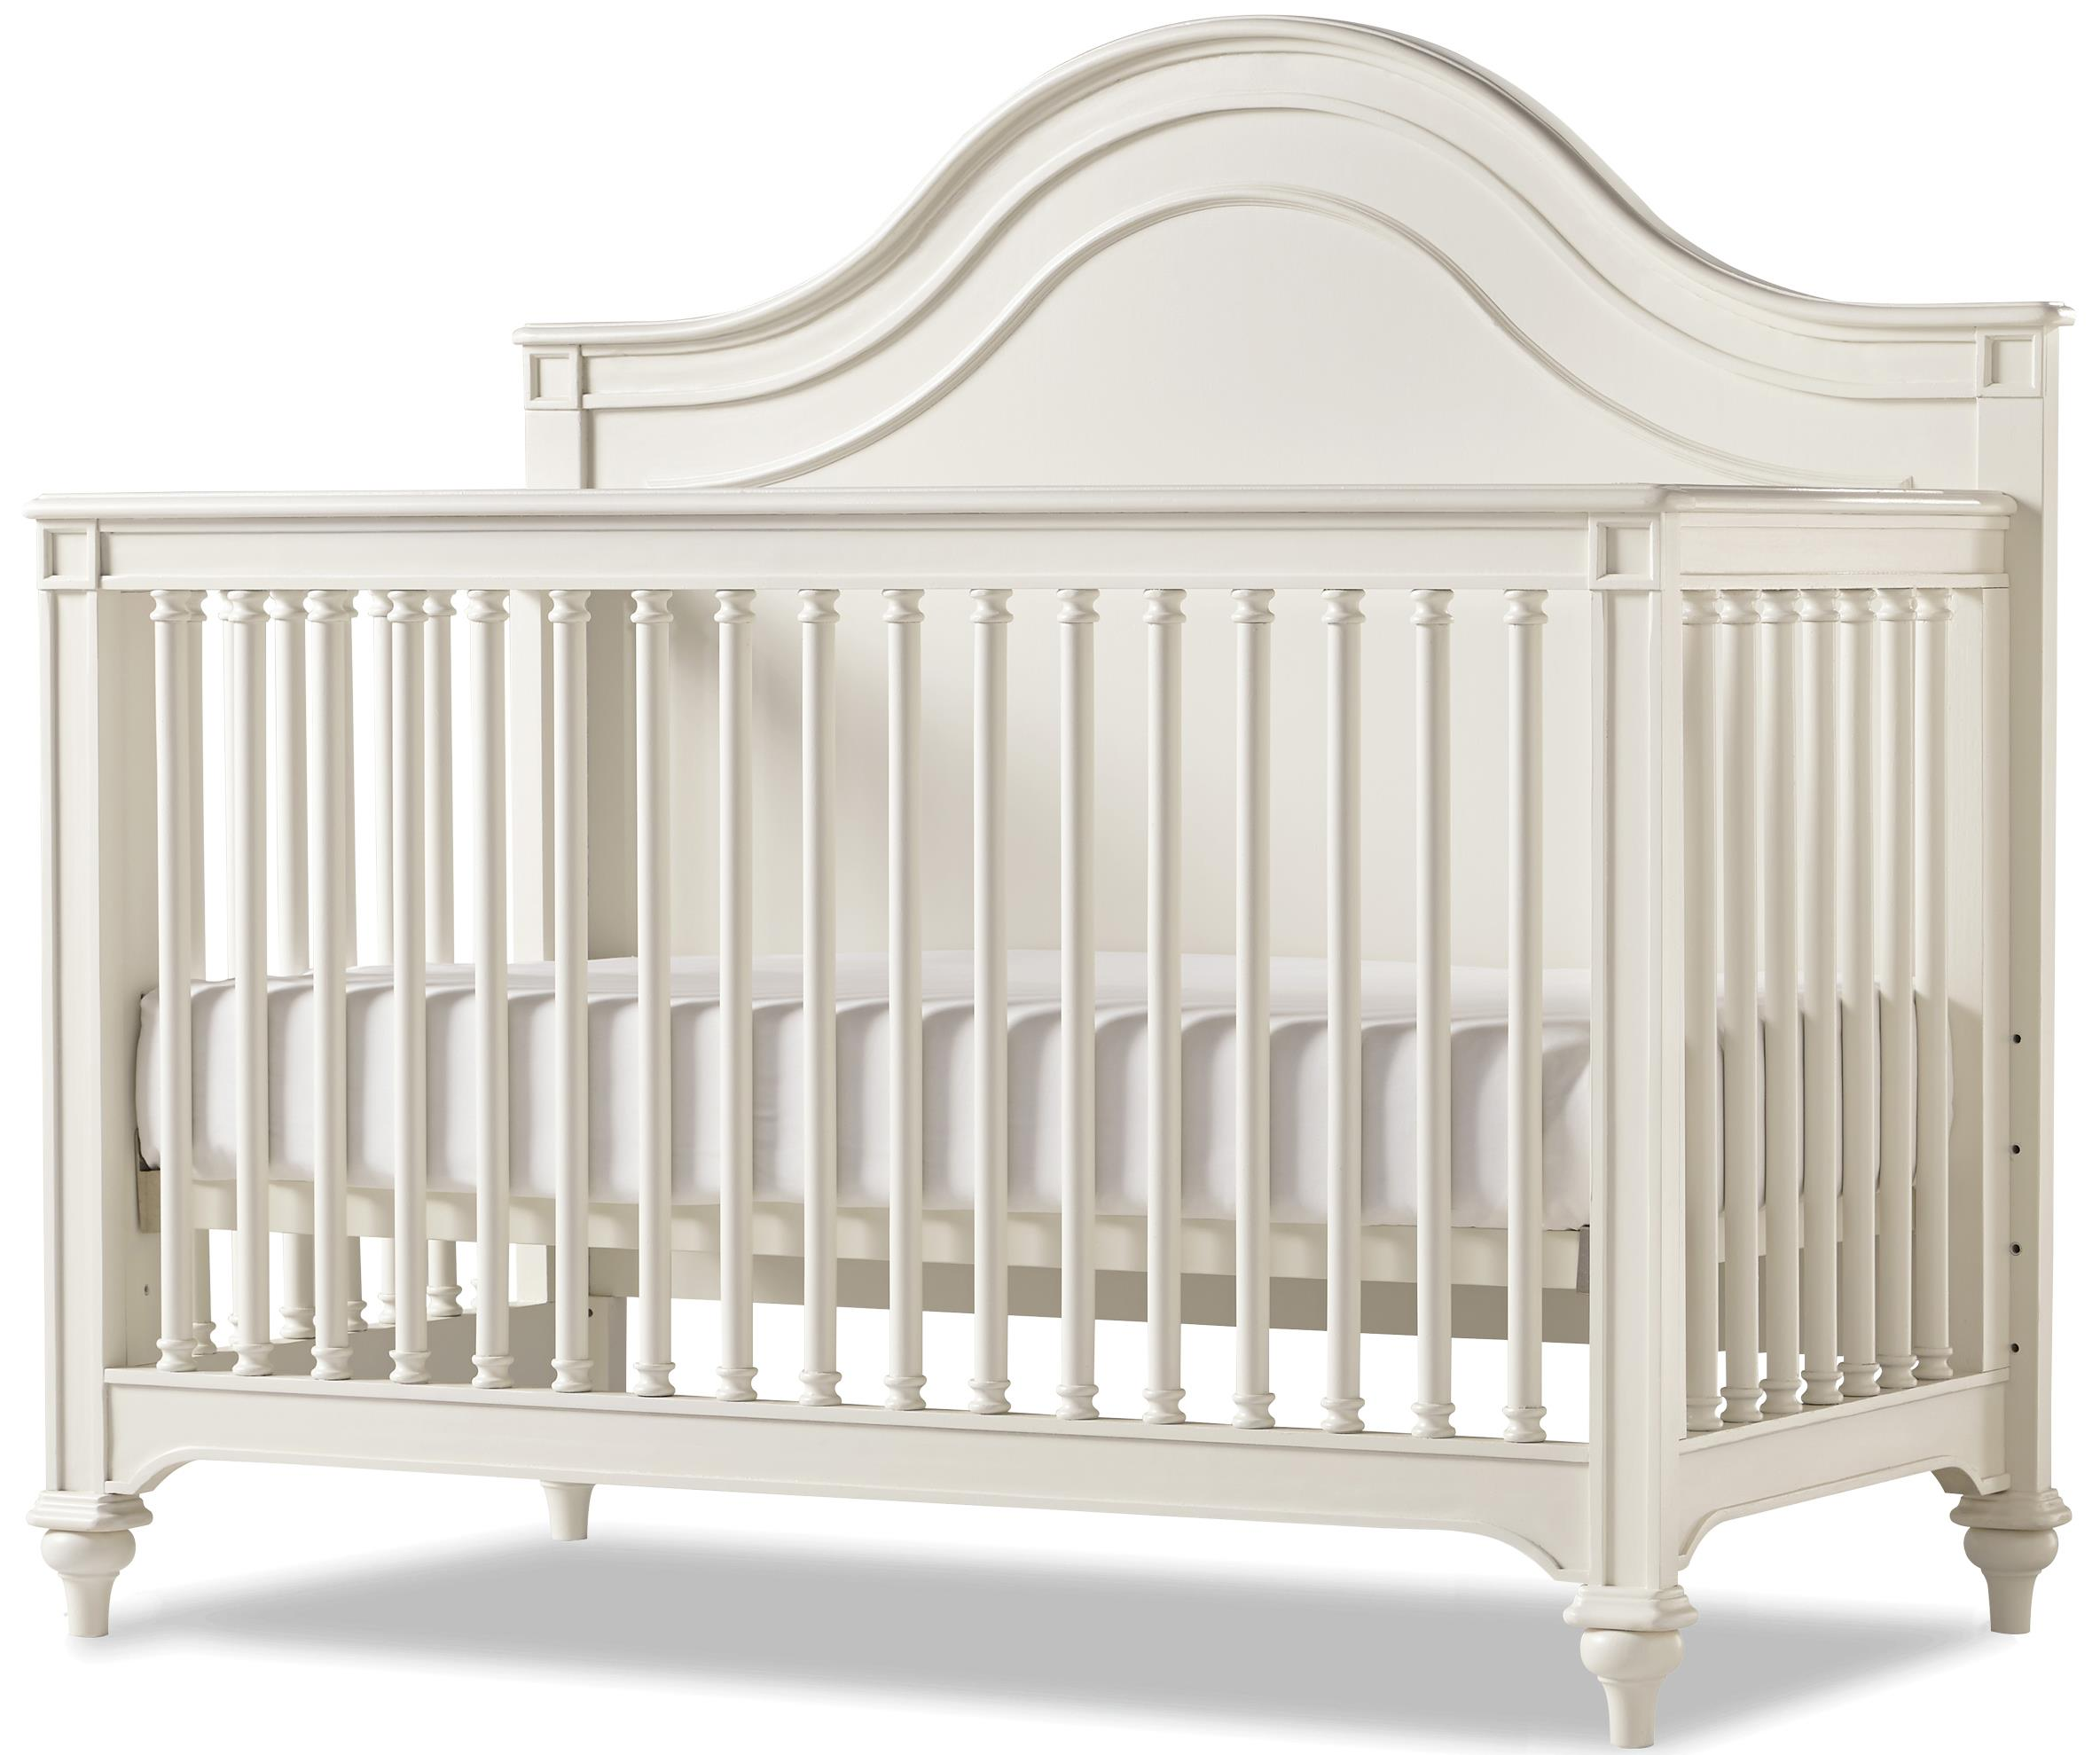 Smartstuff Genevieve Convertible Crib with Toddler Rail - Item Number: 434A310+05